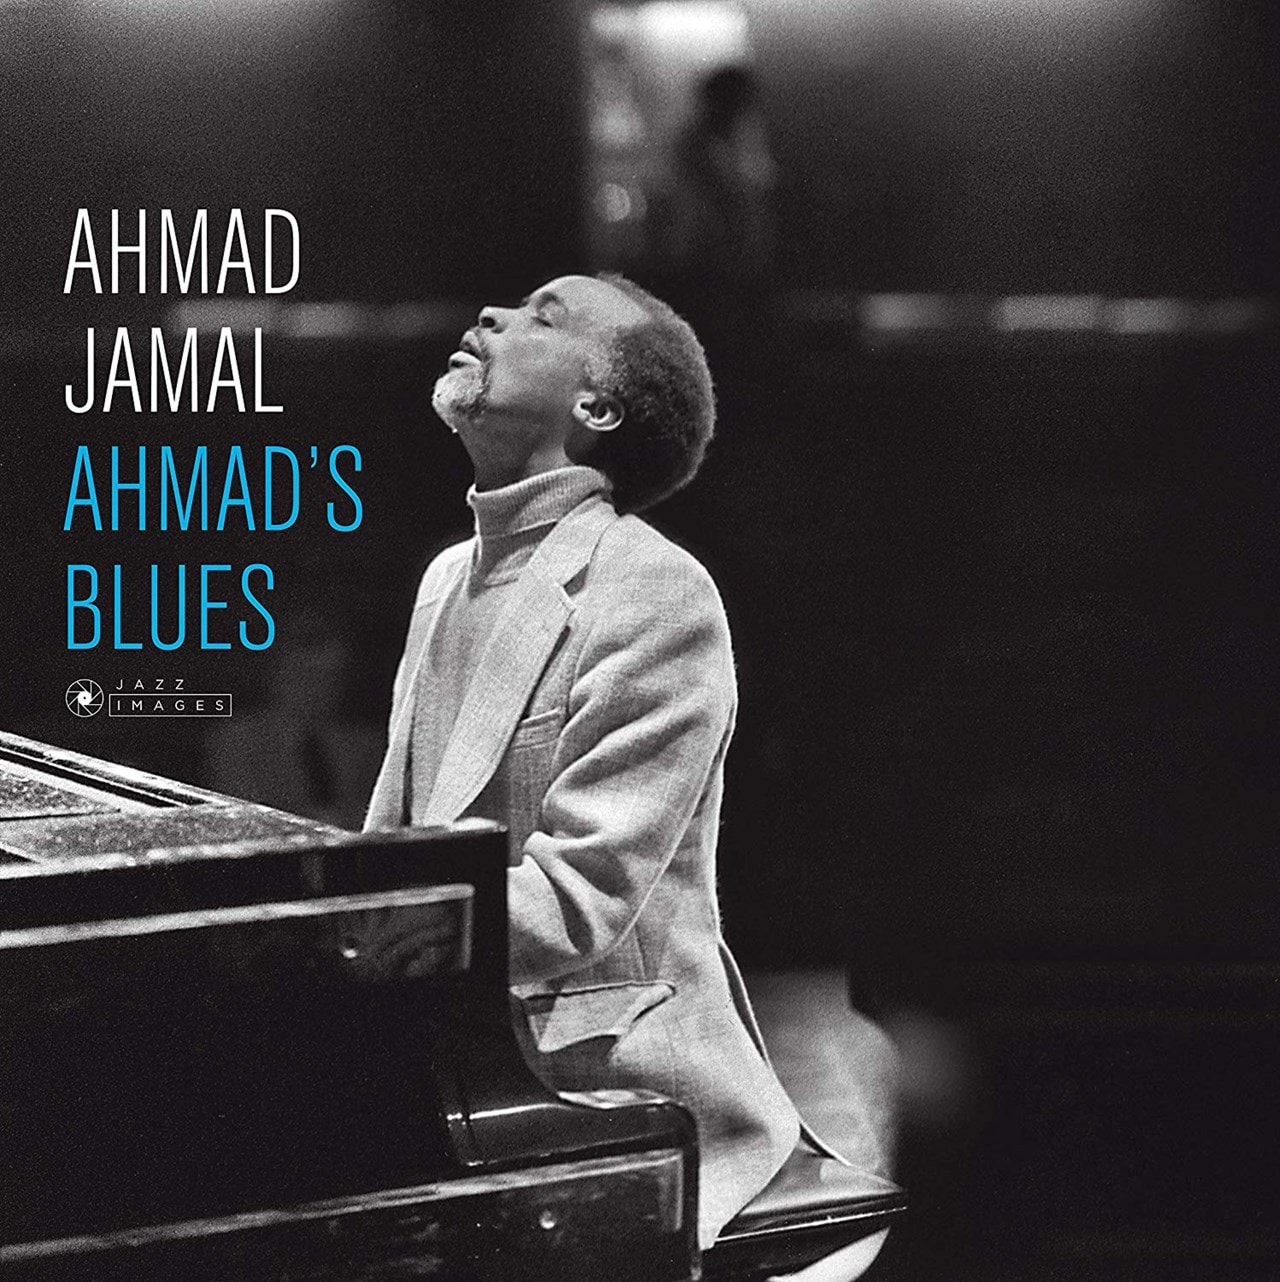 Ahmad's Blues - 1